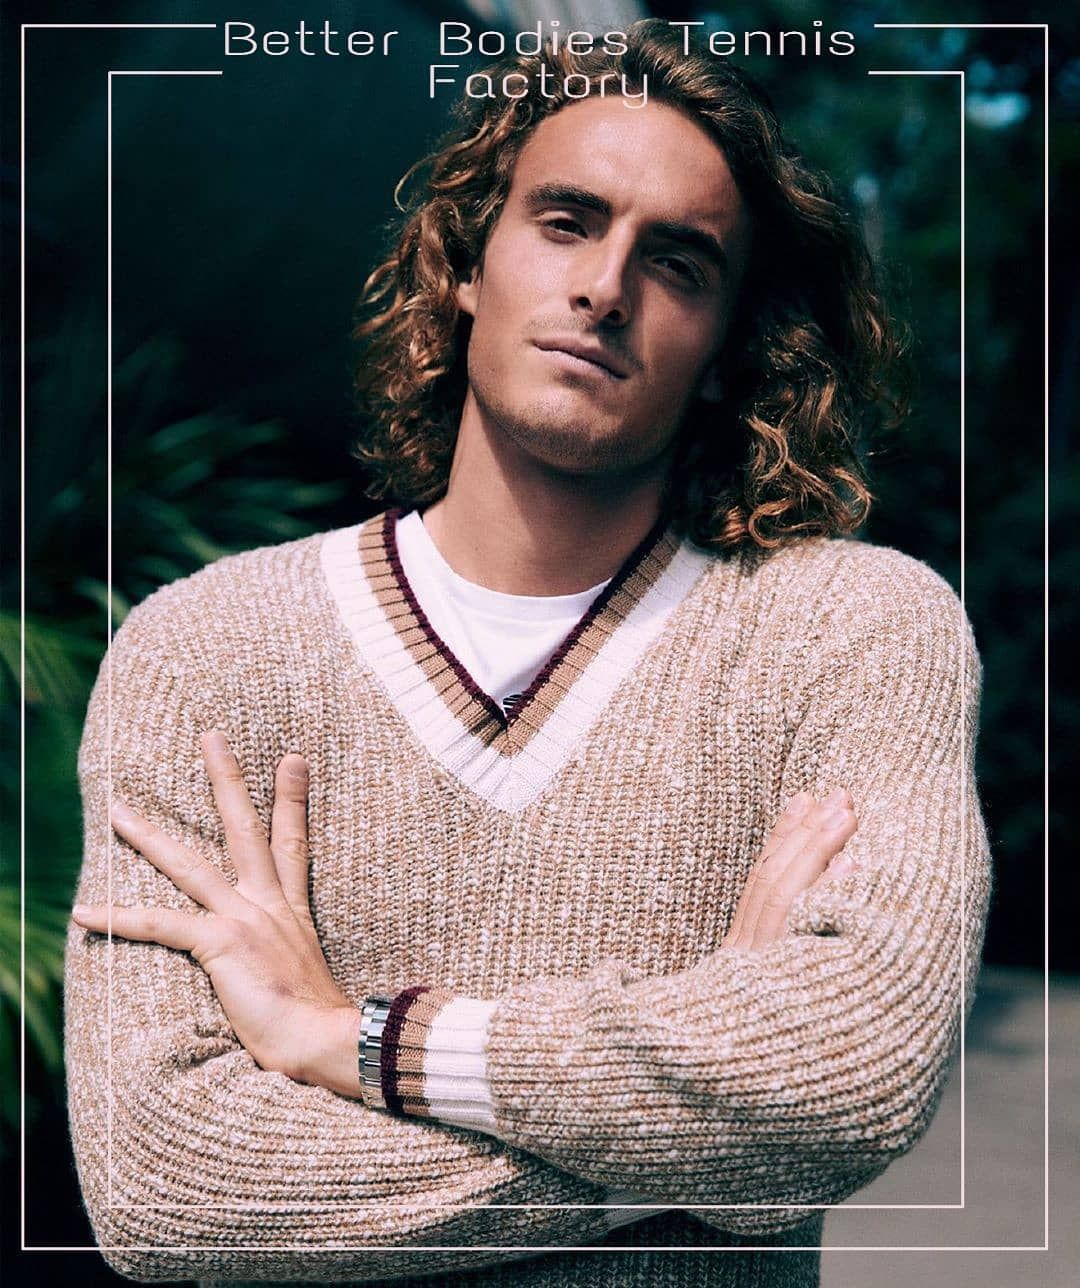 Stefanos Tsitsipas Cover Of Gq Magazine Gq Magazine Gq Men Sweater